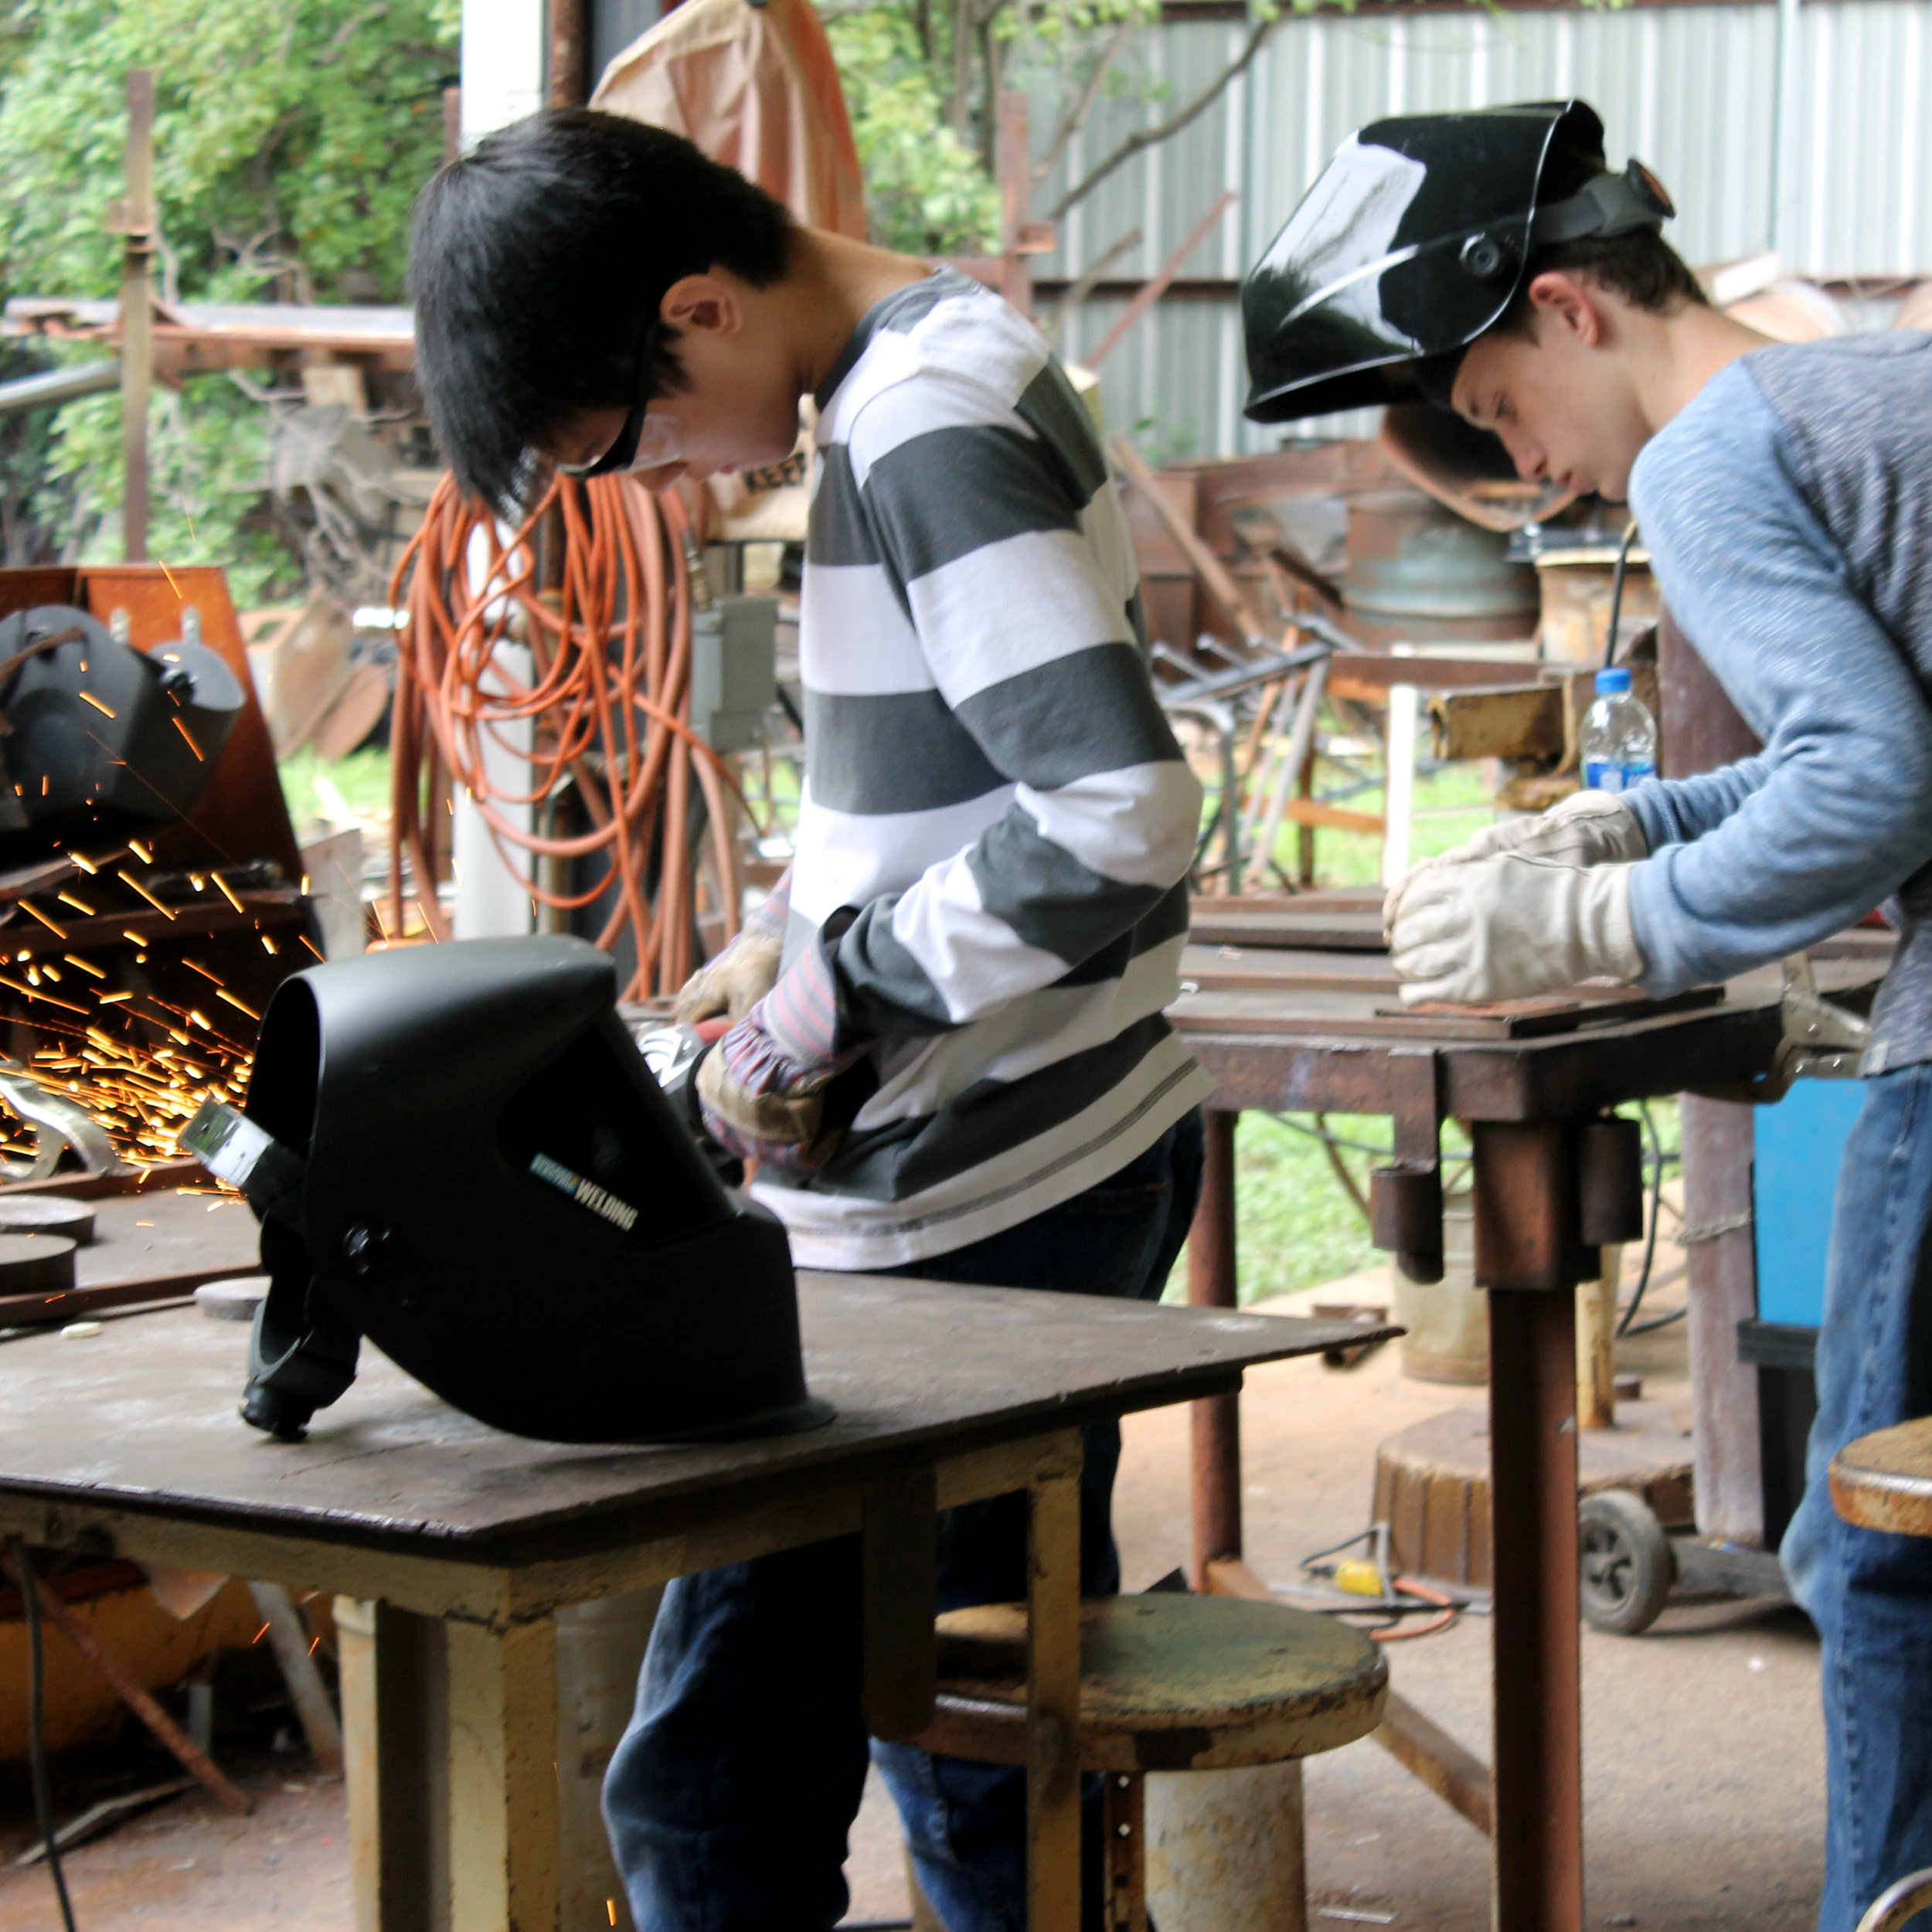 Camp Metalhead - Camp MetalHead is offered in the summer to underserved and at-risk teens ages 13 to 17, providing both relevant job skills training and quality arts instruction in welding and jewelry.